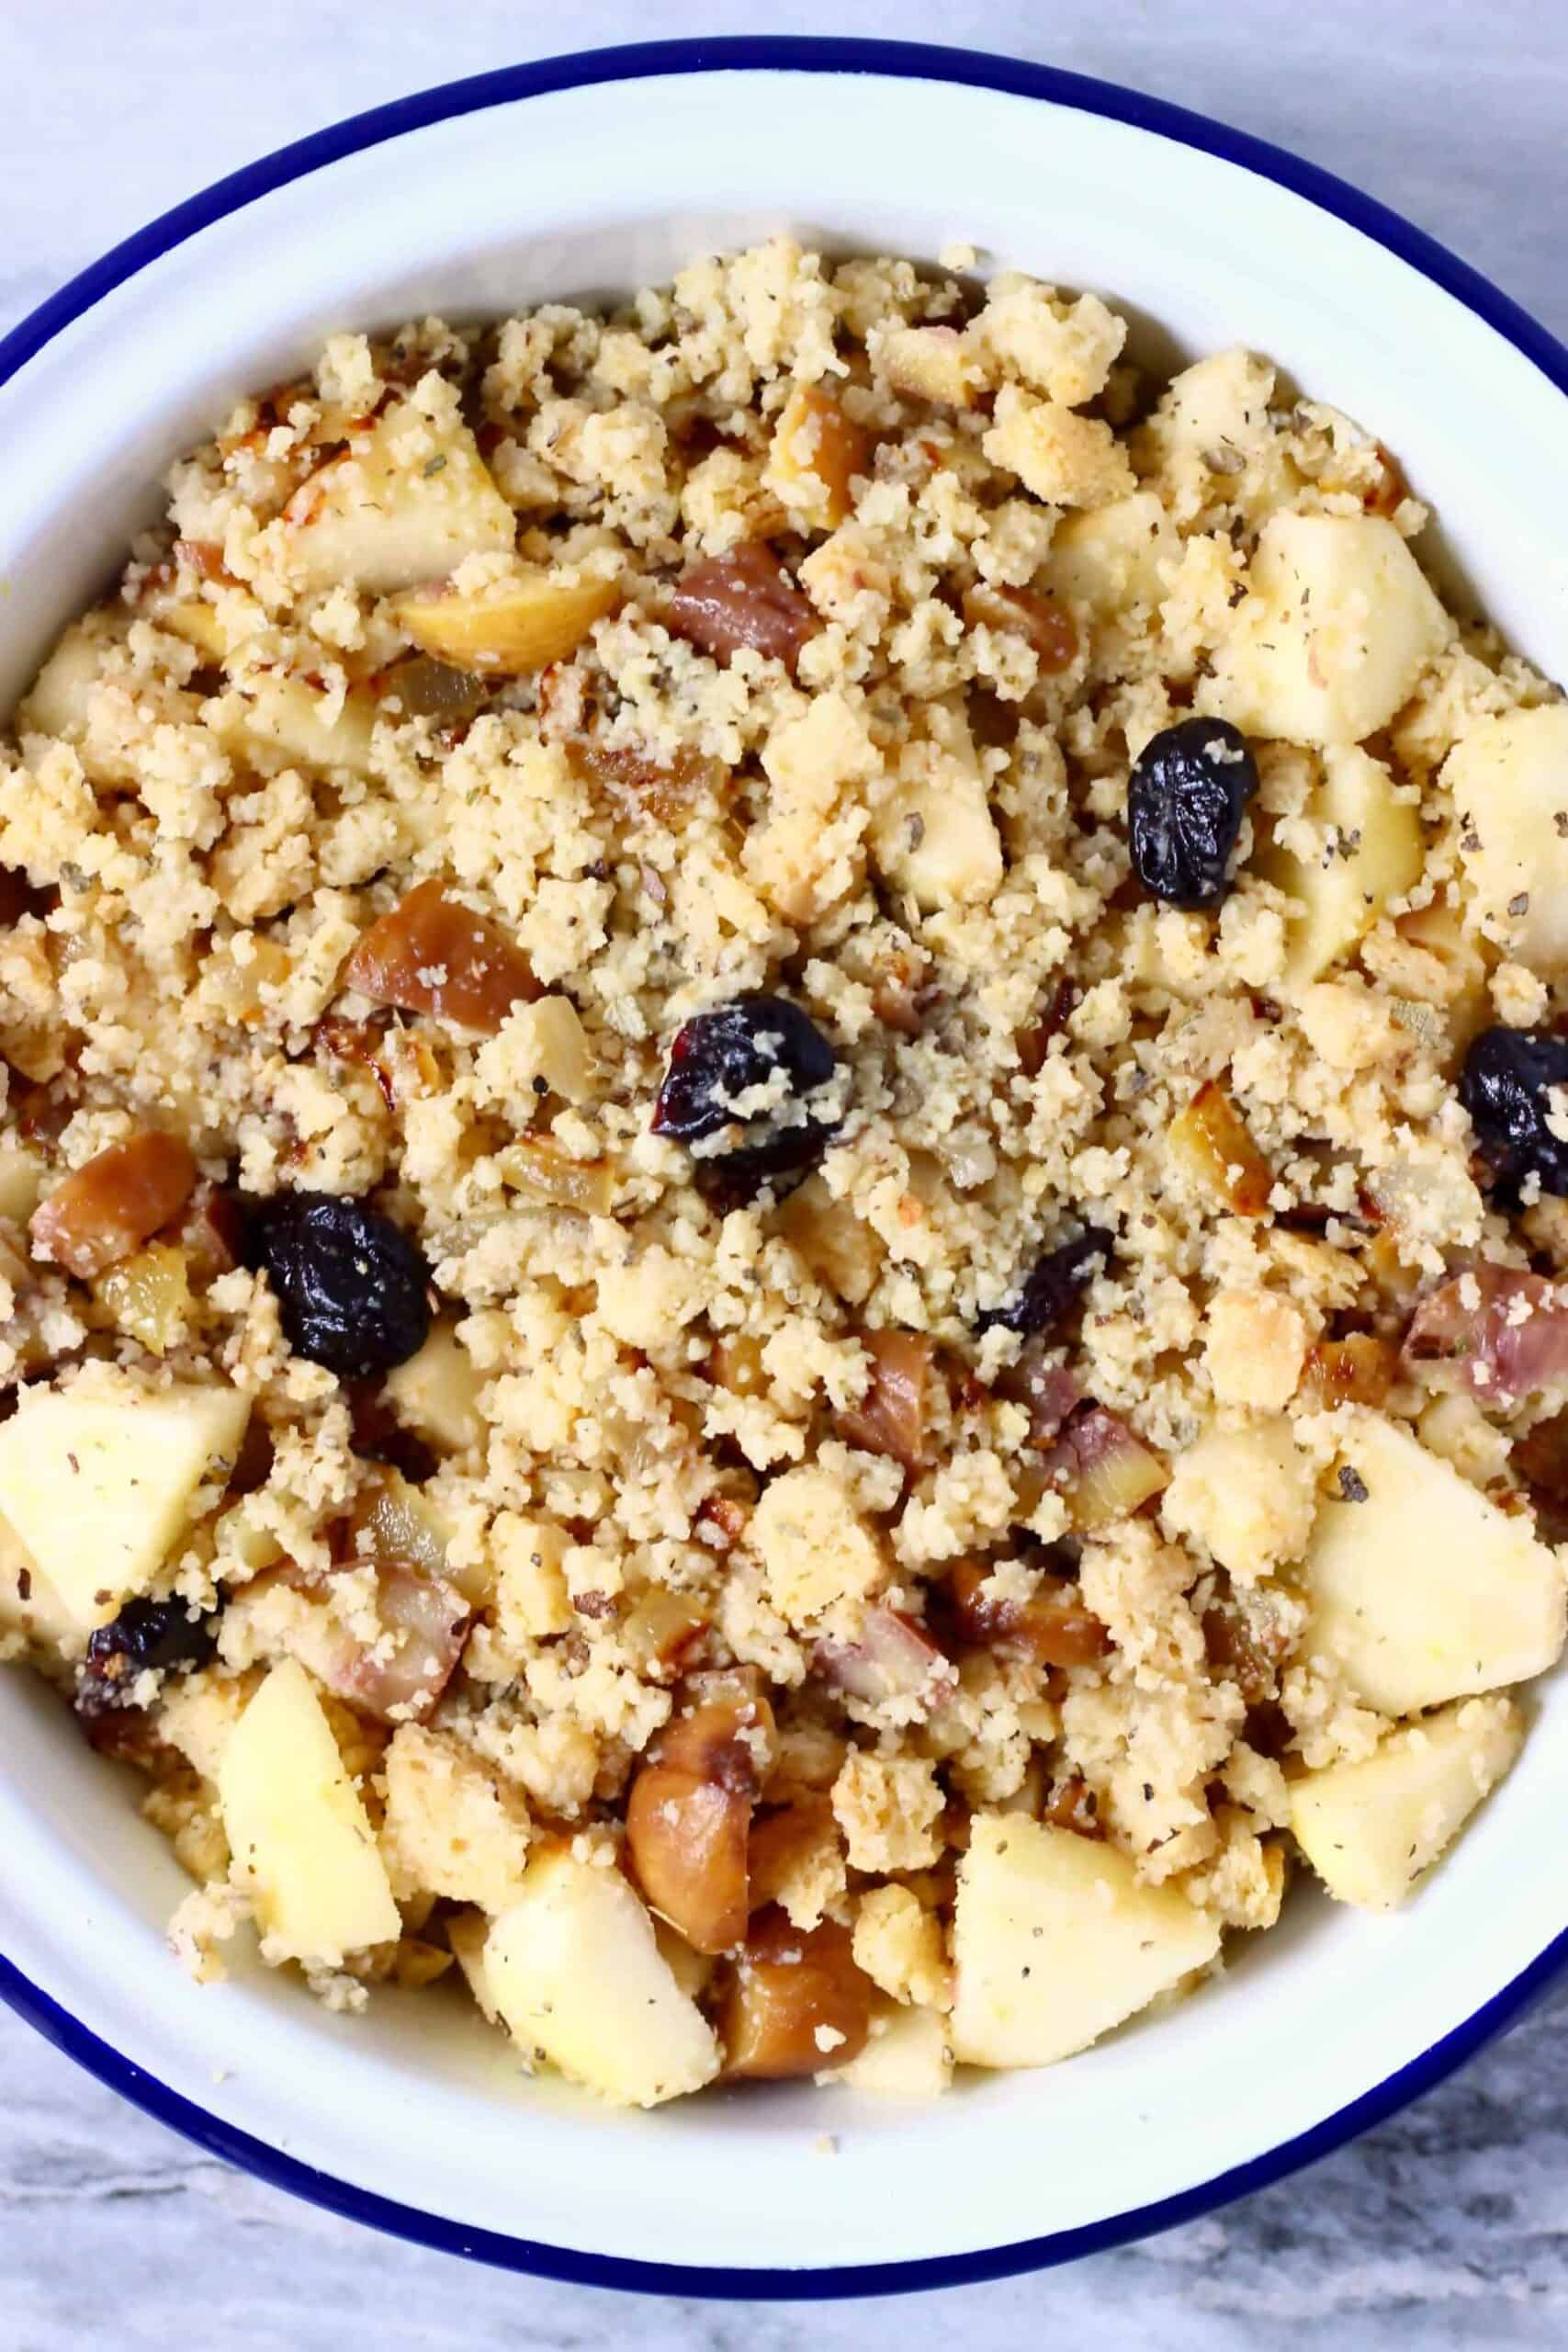 Diced apple, dried cherries, dried sage, chopped chestnuts, breadcrumbs and diced fried onion in a pie dish